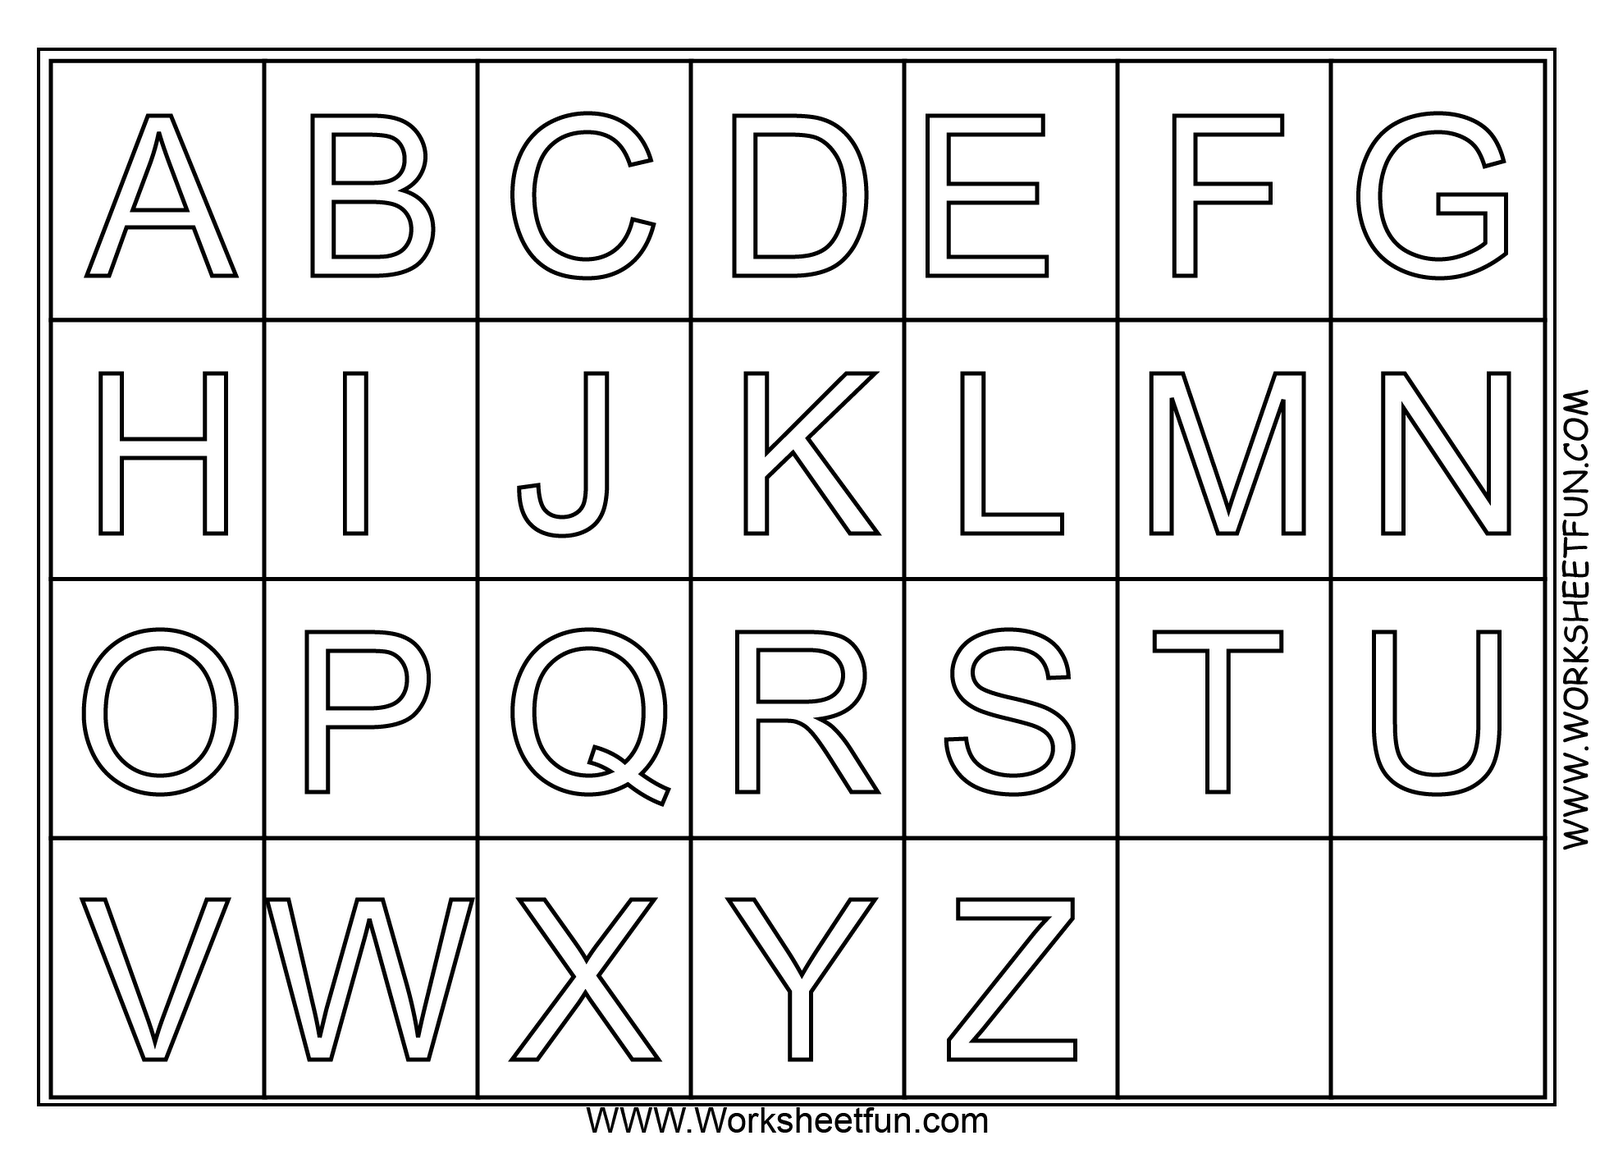 Worksheets Free Printable Alphabet Worksheets For Pre-k a z alphabet coloring pages download and print for free pre k printable worksheets worksheetfun preschool kindergarten grade